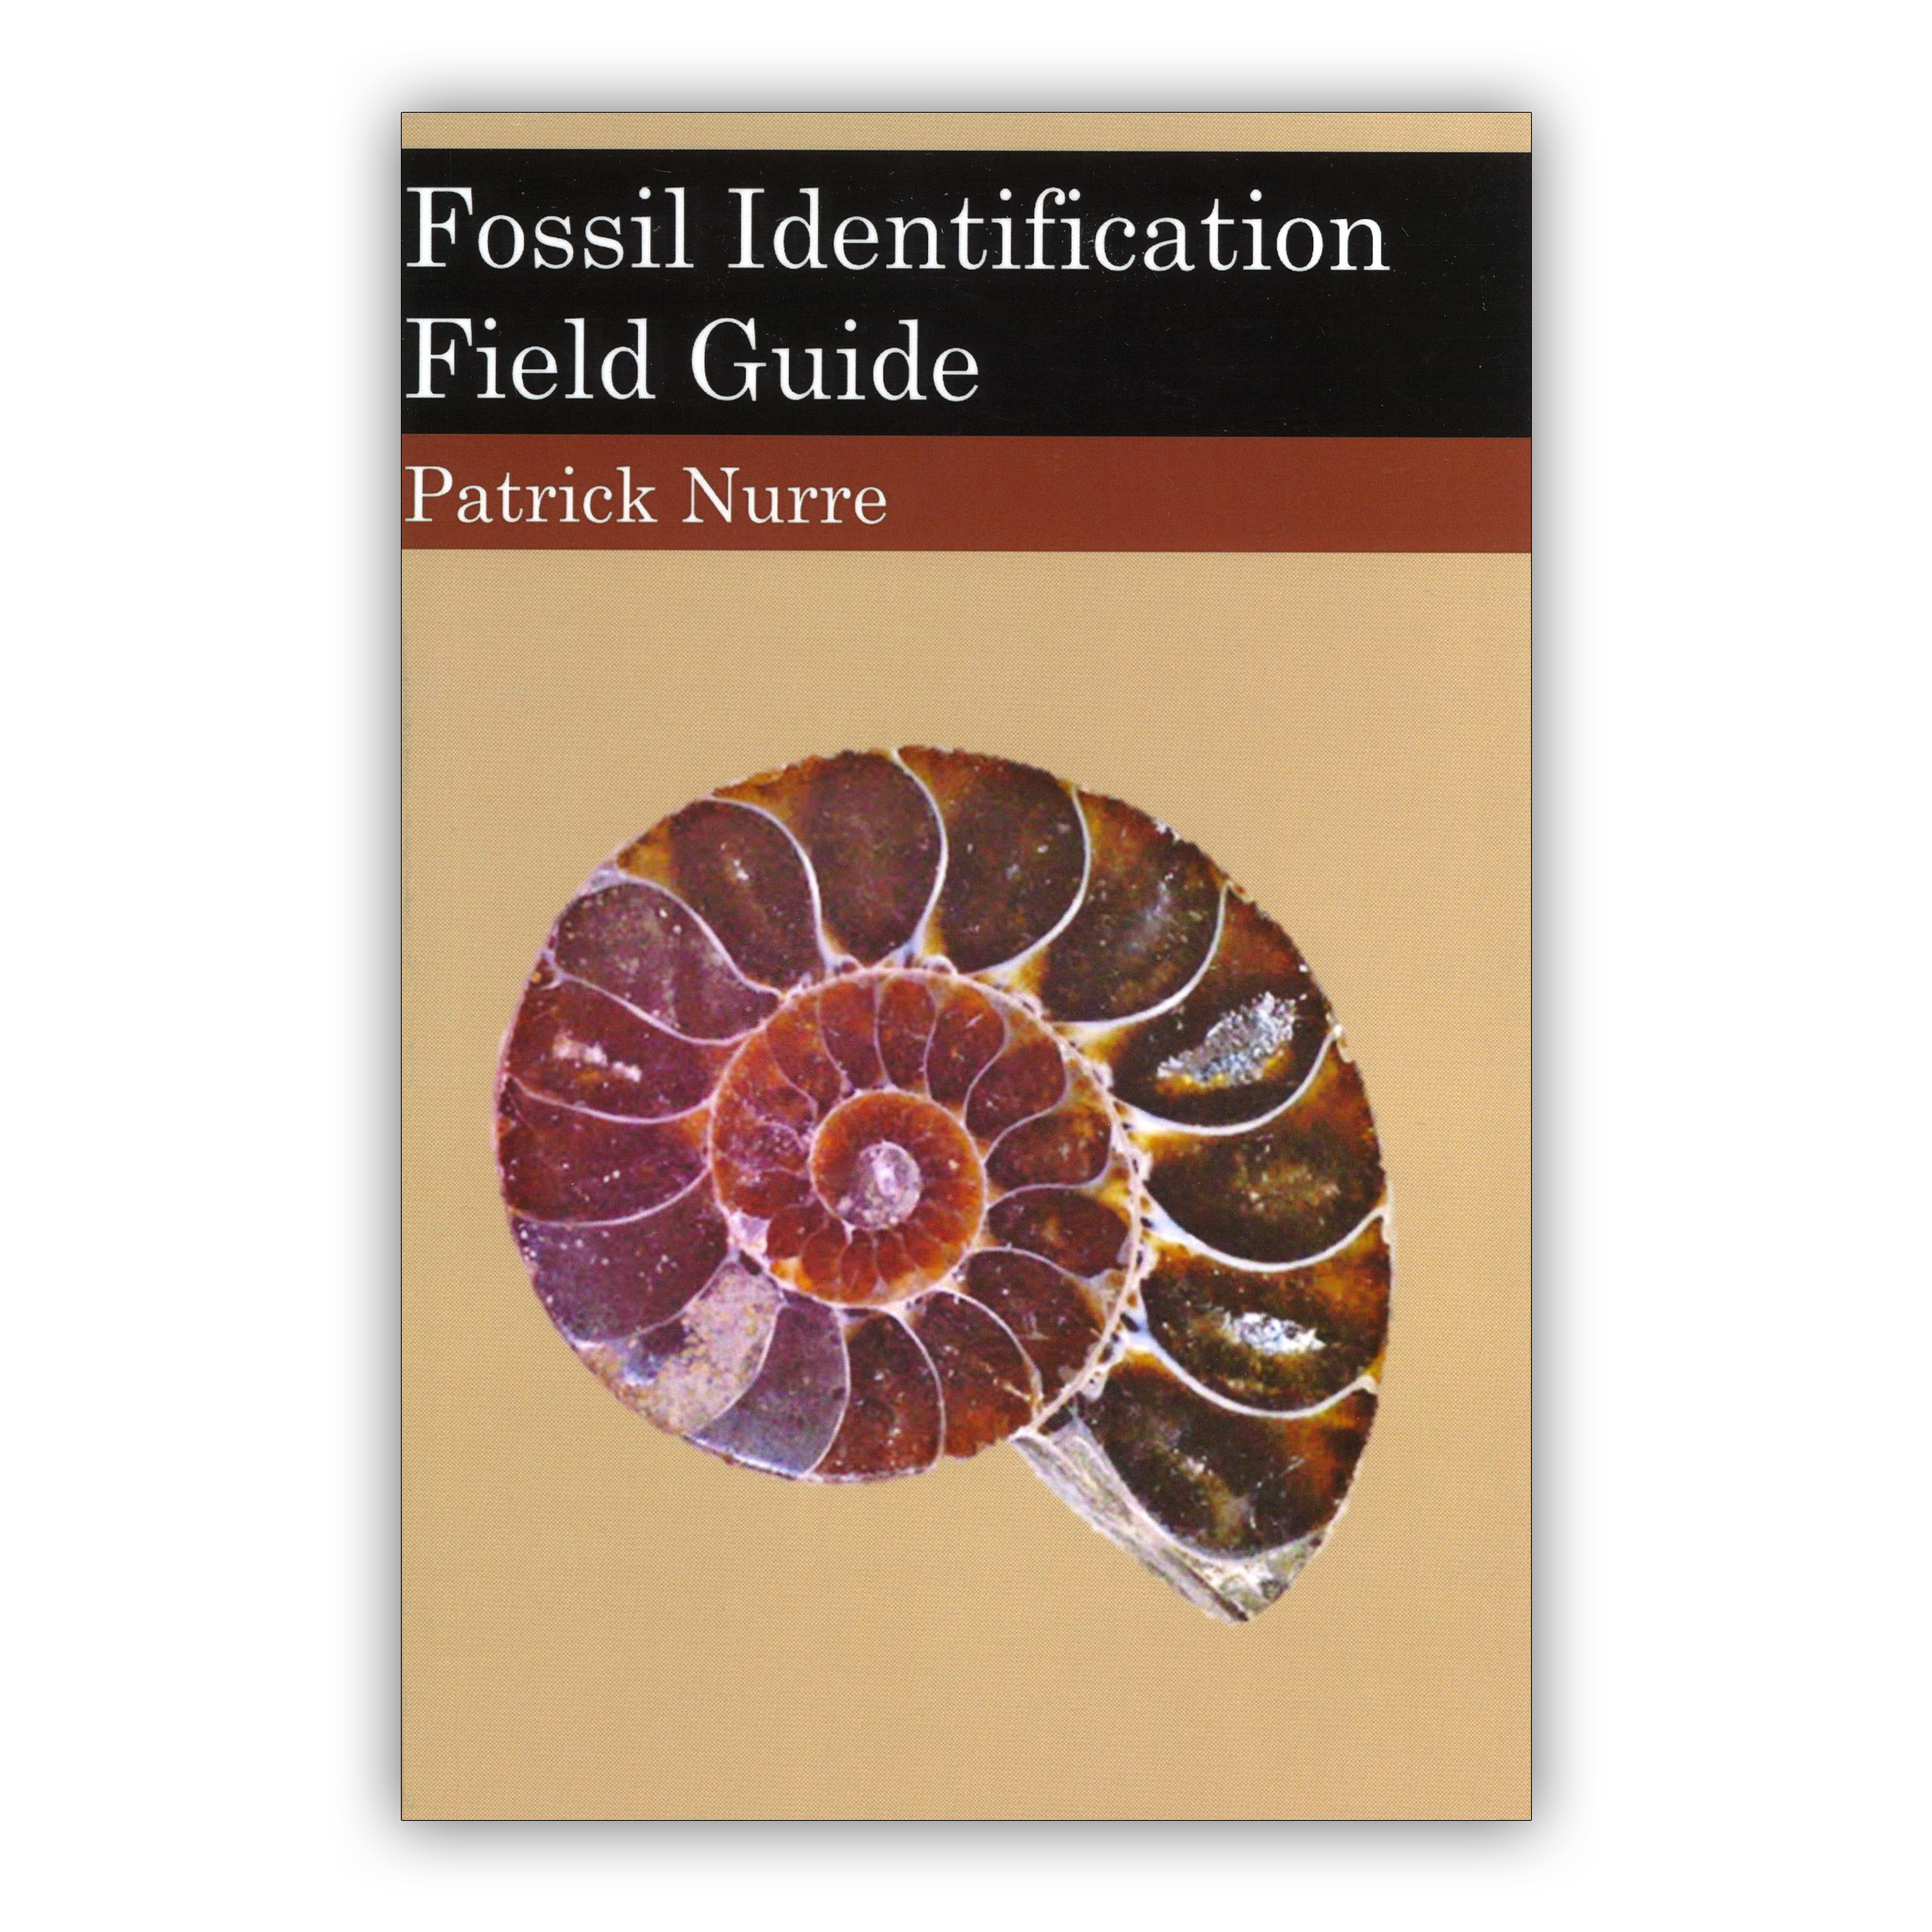 Fossil Identification Field Guide